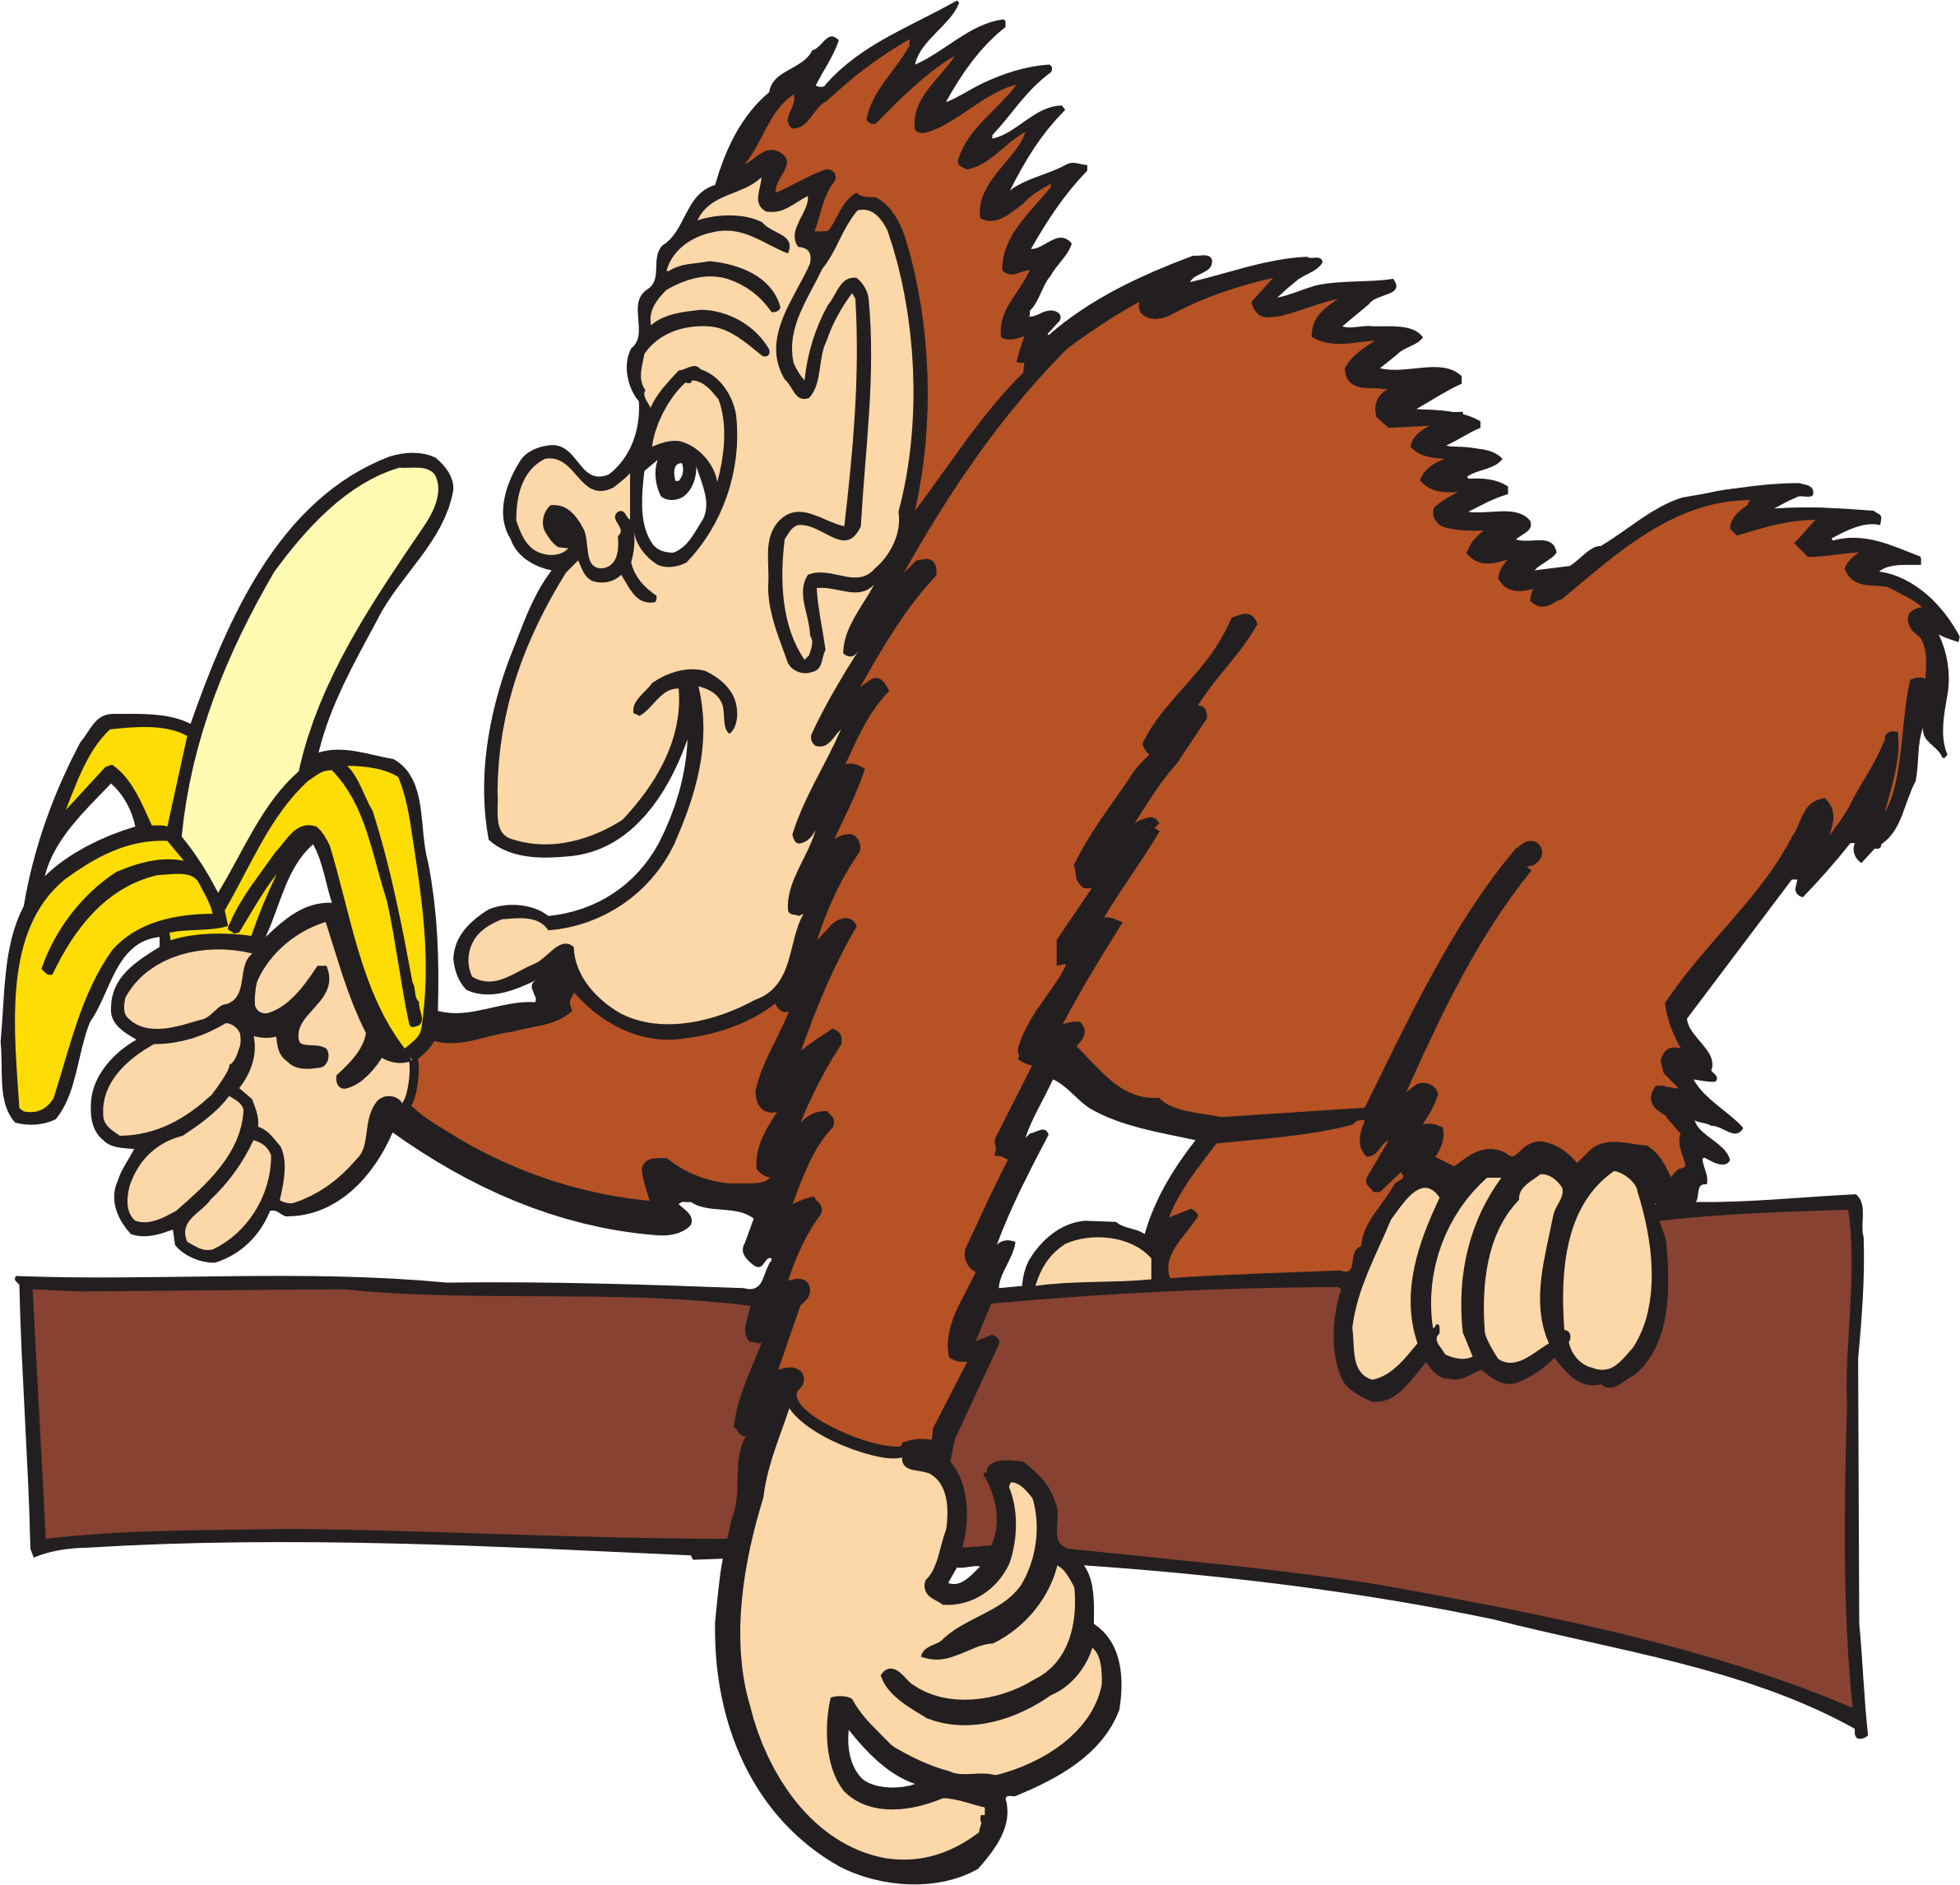 Monkeys eating bananas clipart png. Ape banana big image